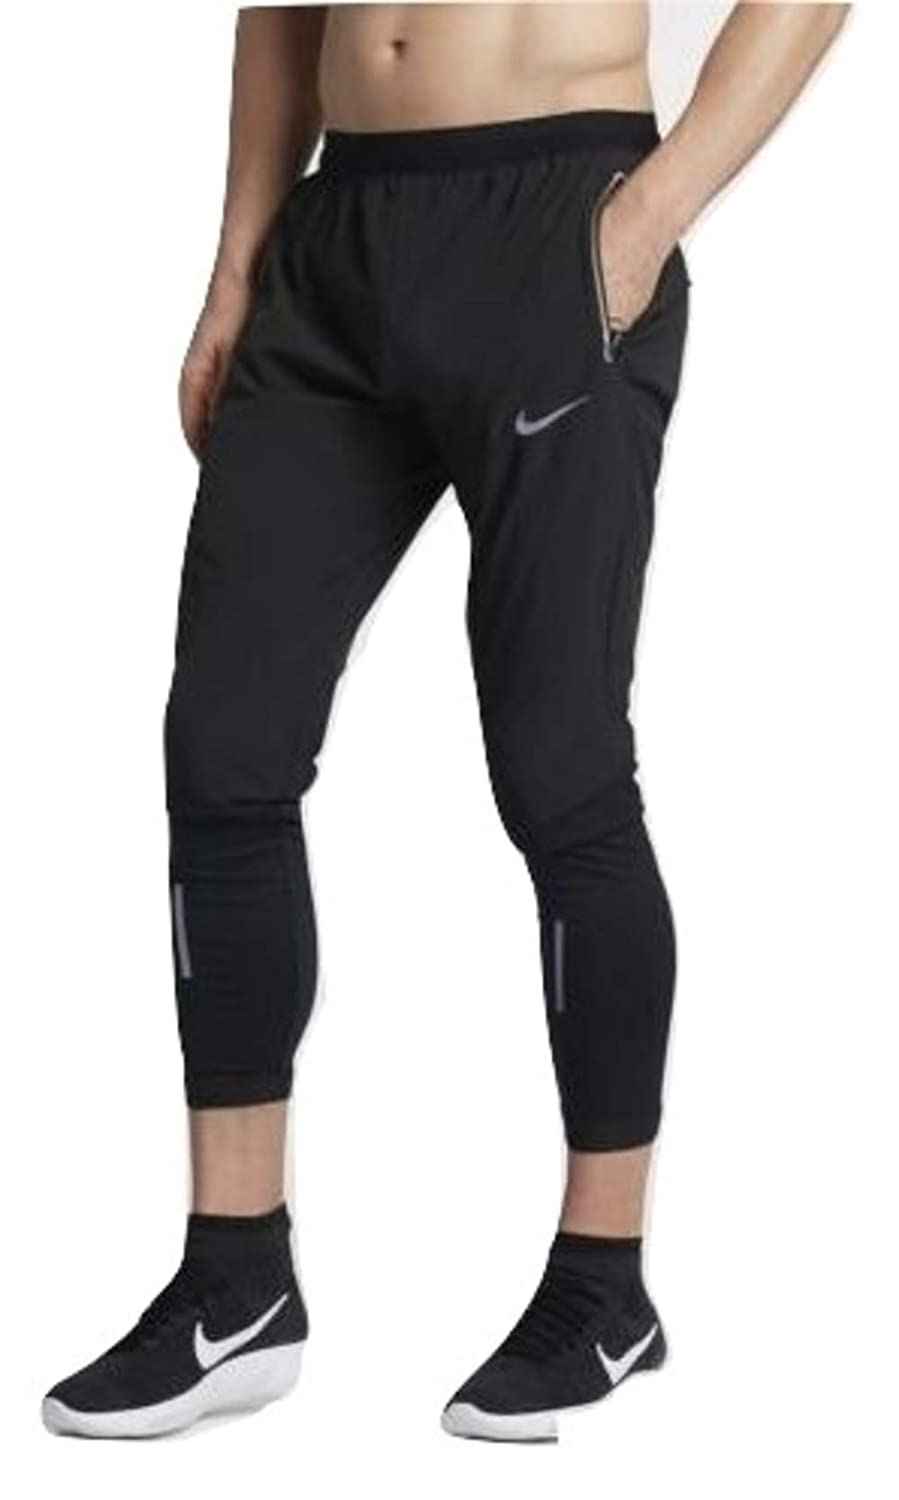 0bd00f207a59ab Nike Men's Flex Swift Running Pants Black/Reflective Silver (X-Large):  Amazon.ca: Clothing & Accessories